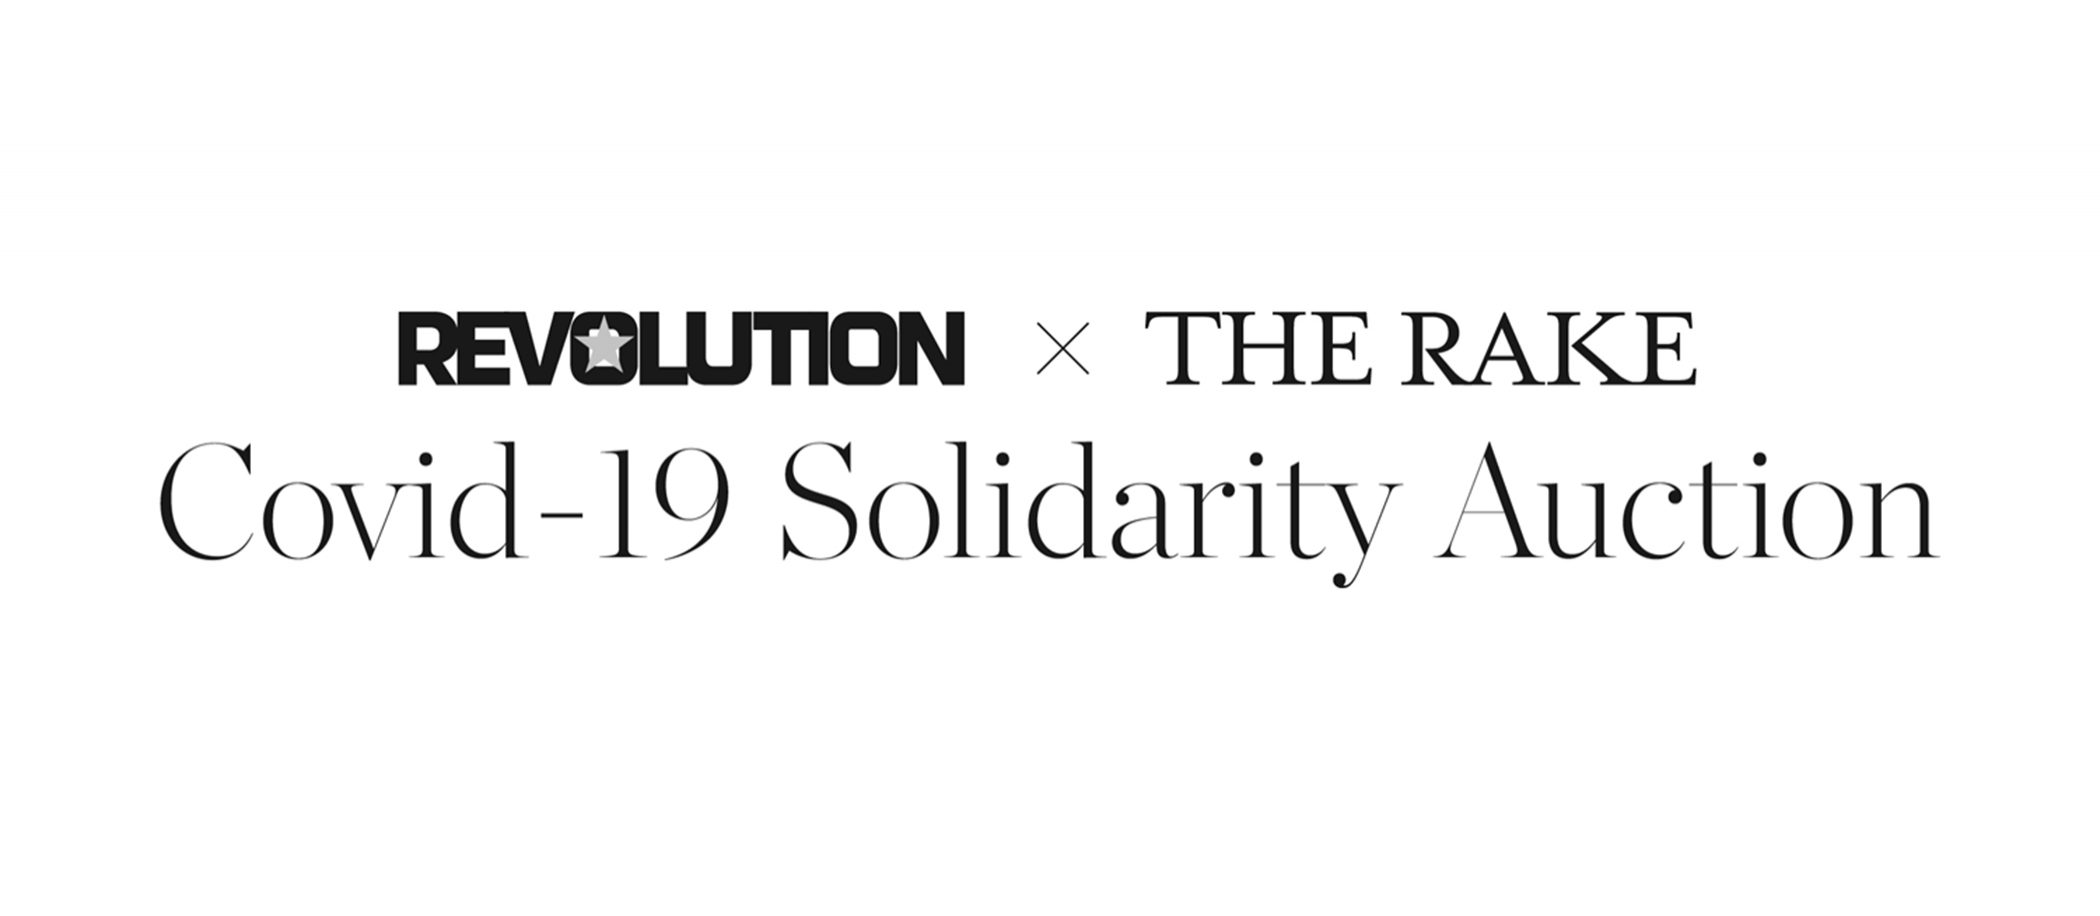 Revolution x The Rake COVID-19 Solidarity Auction